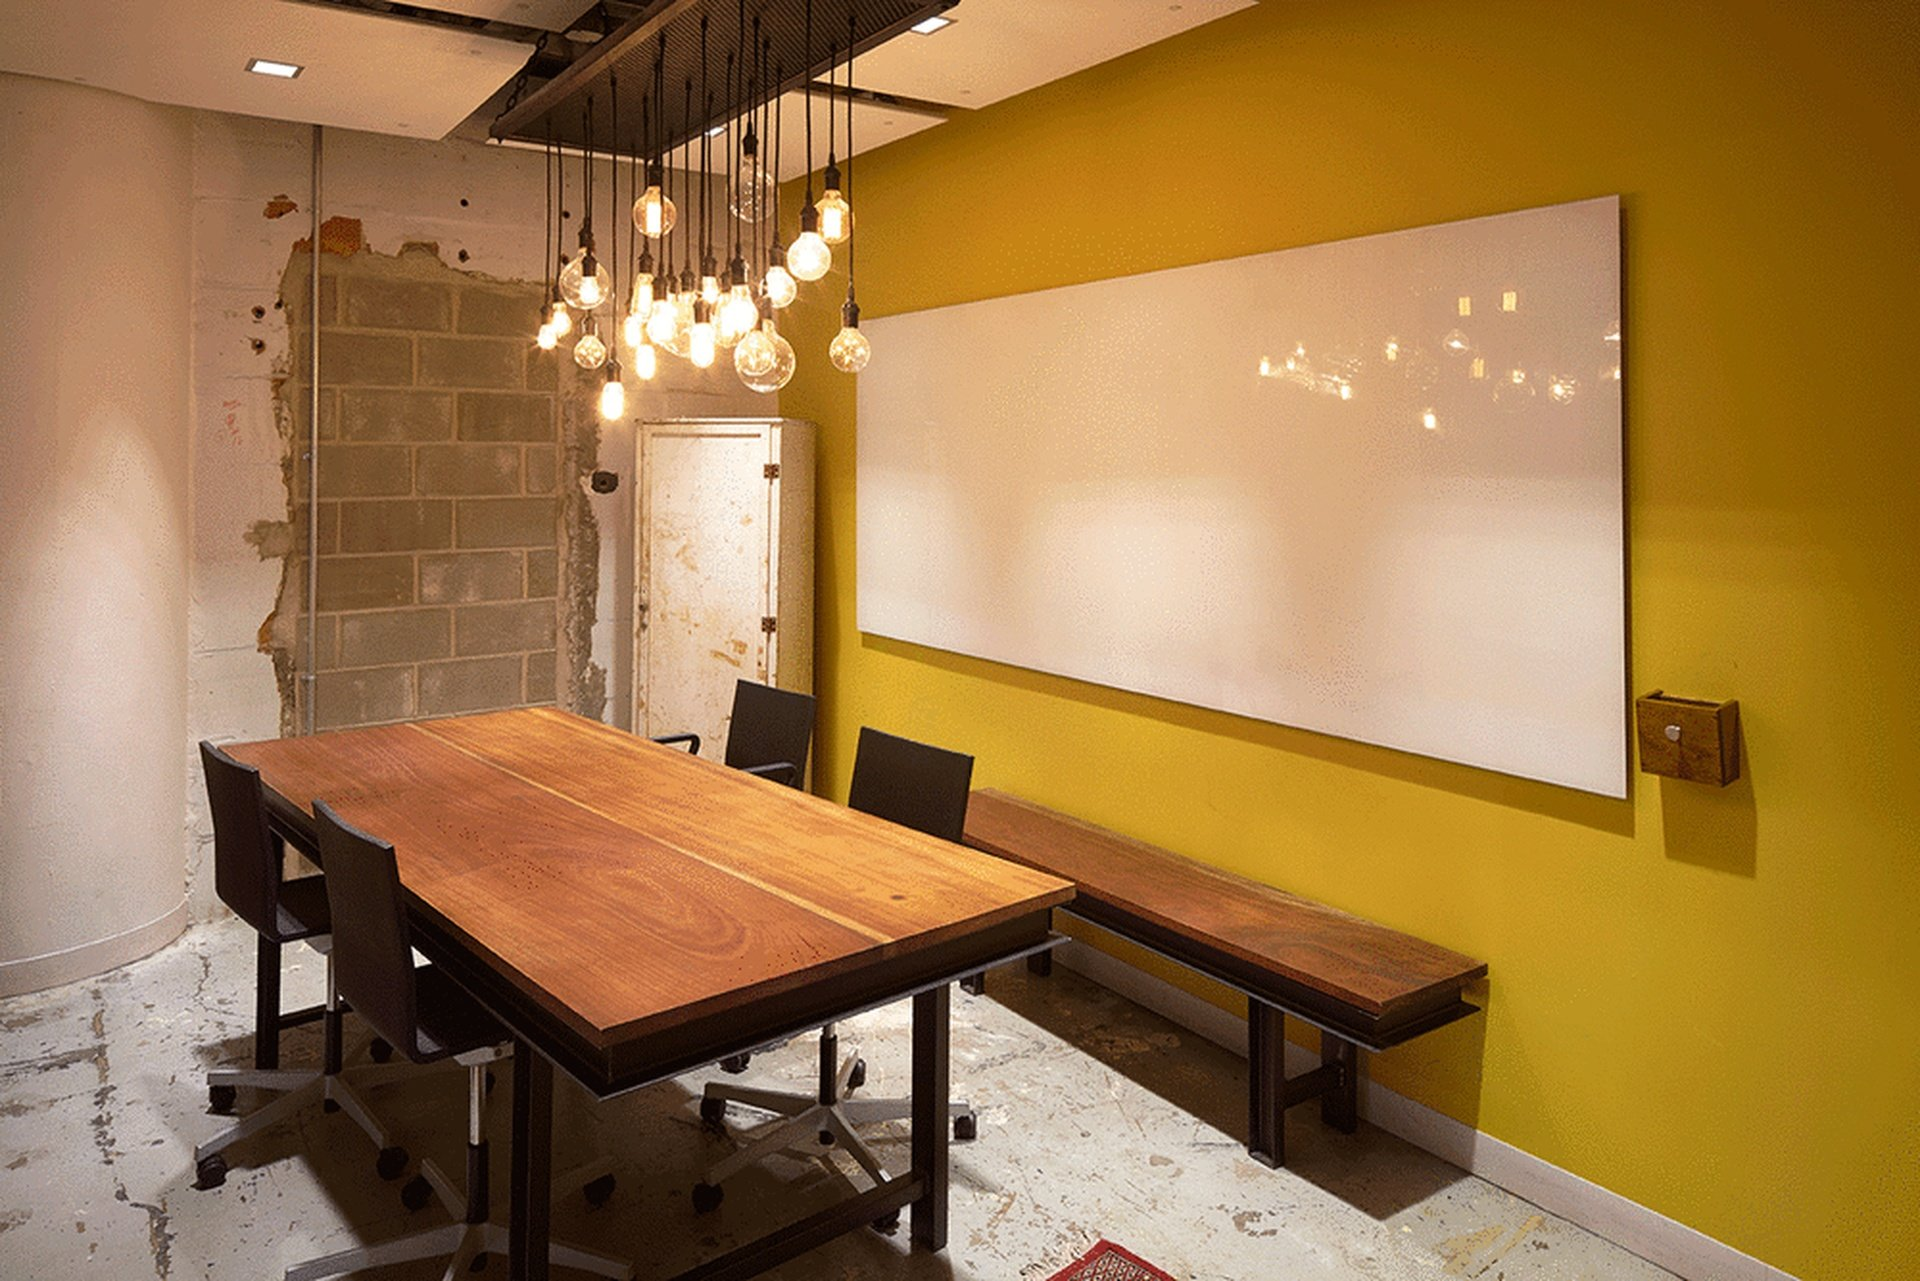 NYC conference rooms Coworking space Centre for Social Innovation - Meeting Room 1 image 0